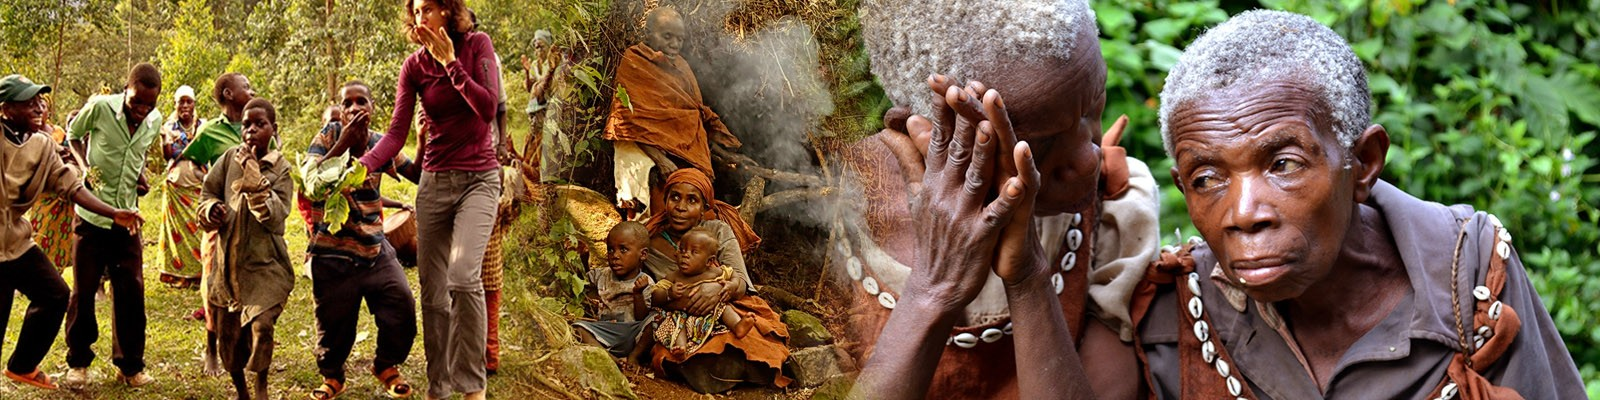 bwindi-impenetrable-forest-national-park-cultural-safaris